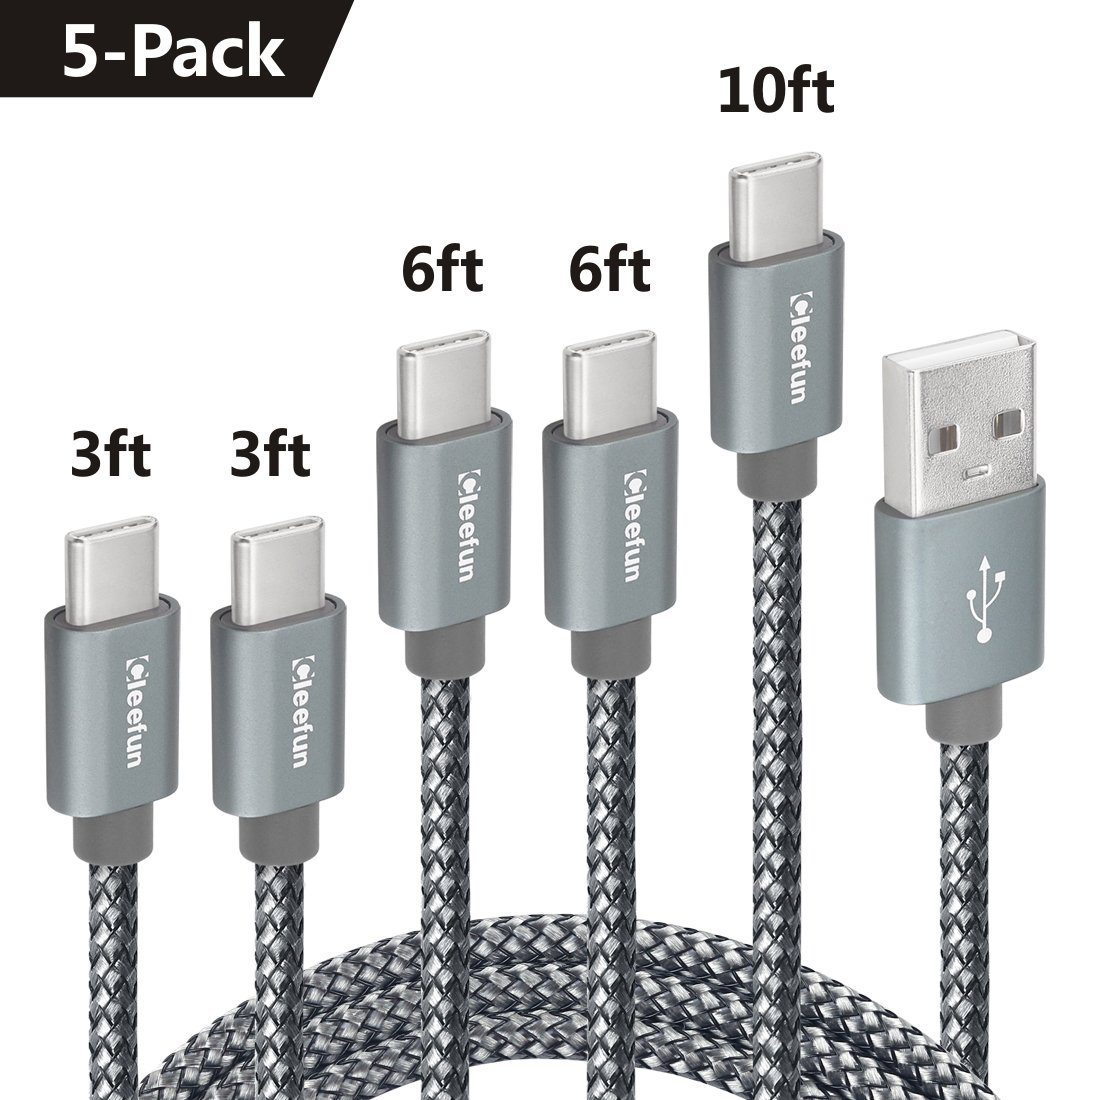 USB C Cable Durable Nylon Brained,[5-Pack, 3Ft 3Ft 6Ft 6Ft 10Ft] Cleefun Fast Charge Type C Charger Cord Charging & Sync For Samsung Galaxy S8 S9 Plus Note 8, Lg V30 V20 G5 G6 Google Pixel Xl(Gray) by Cleefun